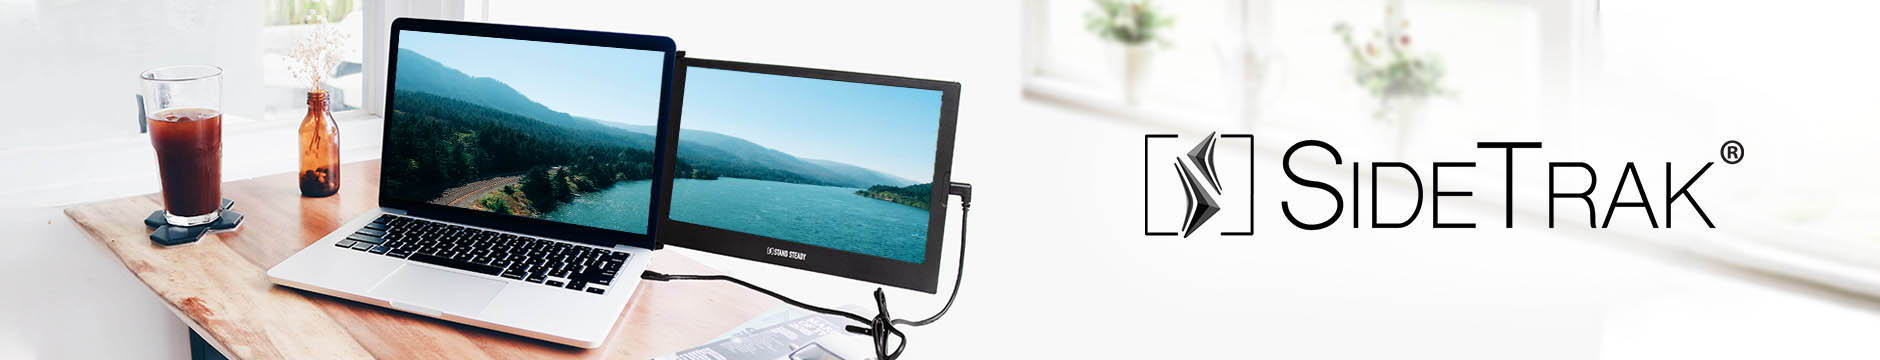 Showcasing SideTrak portable laptop monitor attachable screen